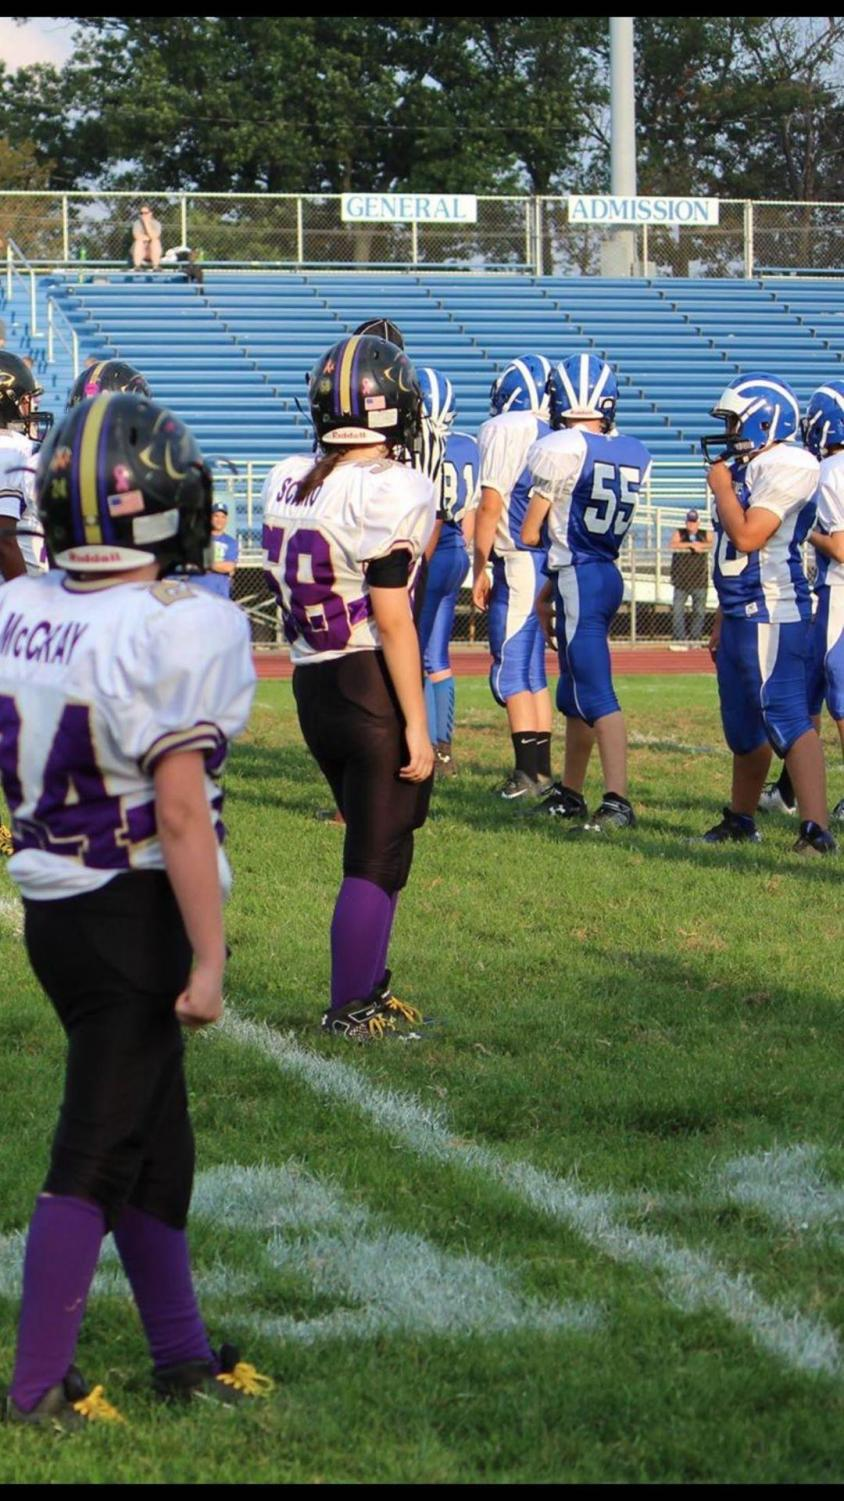 Senior Tabitha Scimio (number 58) takes the field with the rest of her football team before a game when she was in middle school.